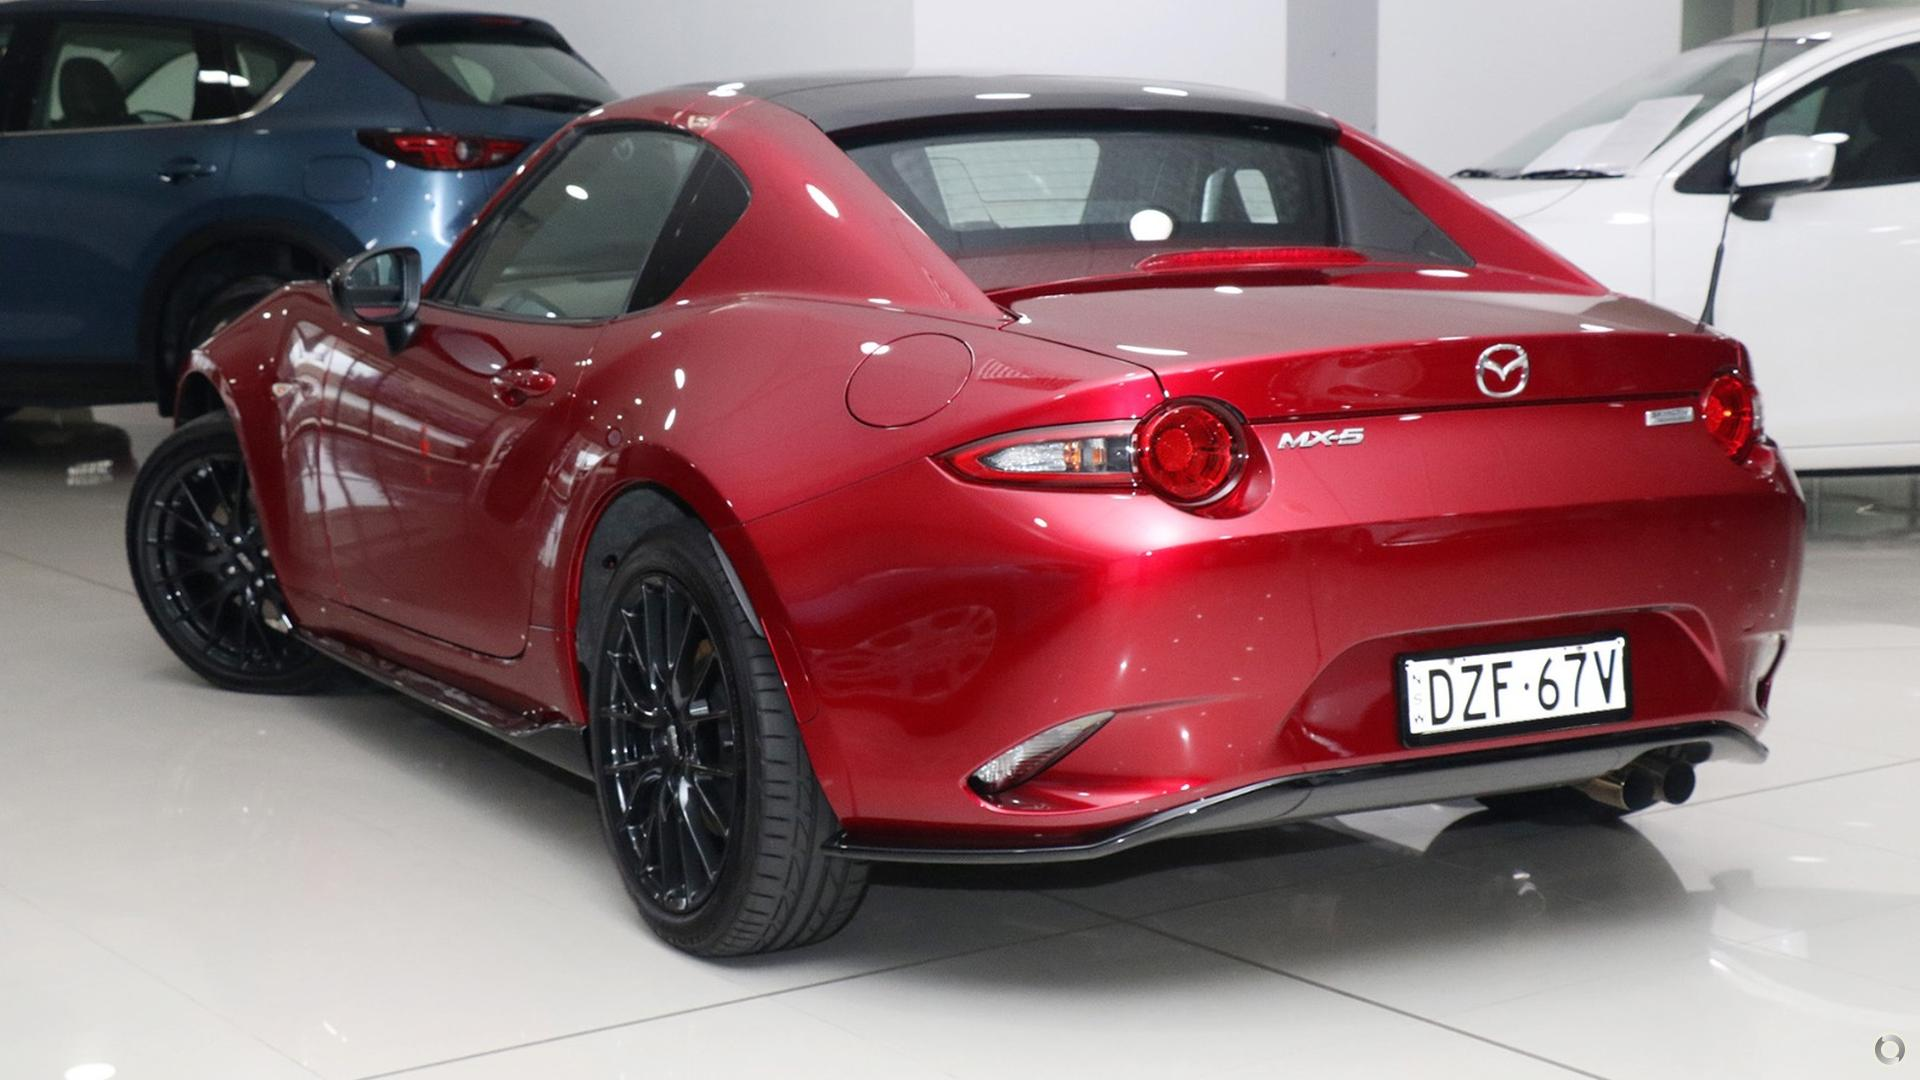 2017 Mazda MX-5 Limited Edition ND